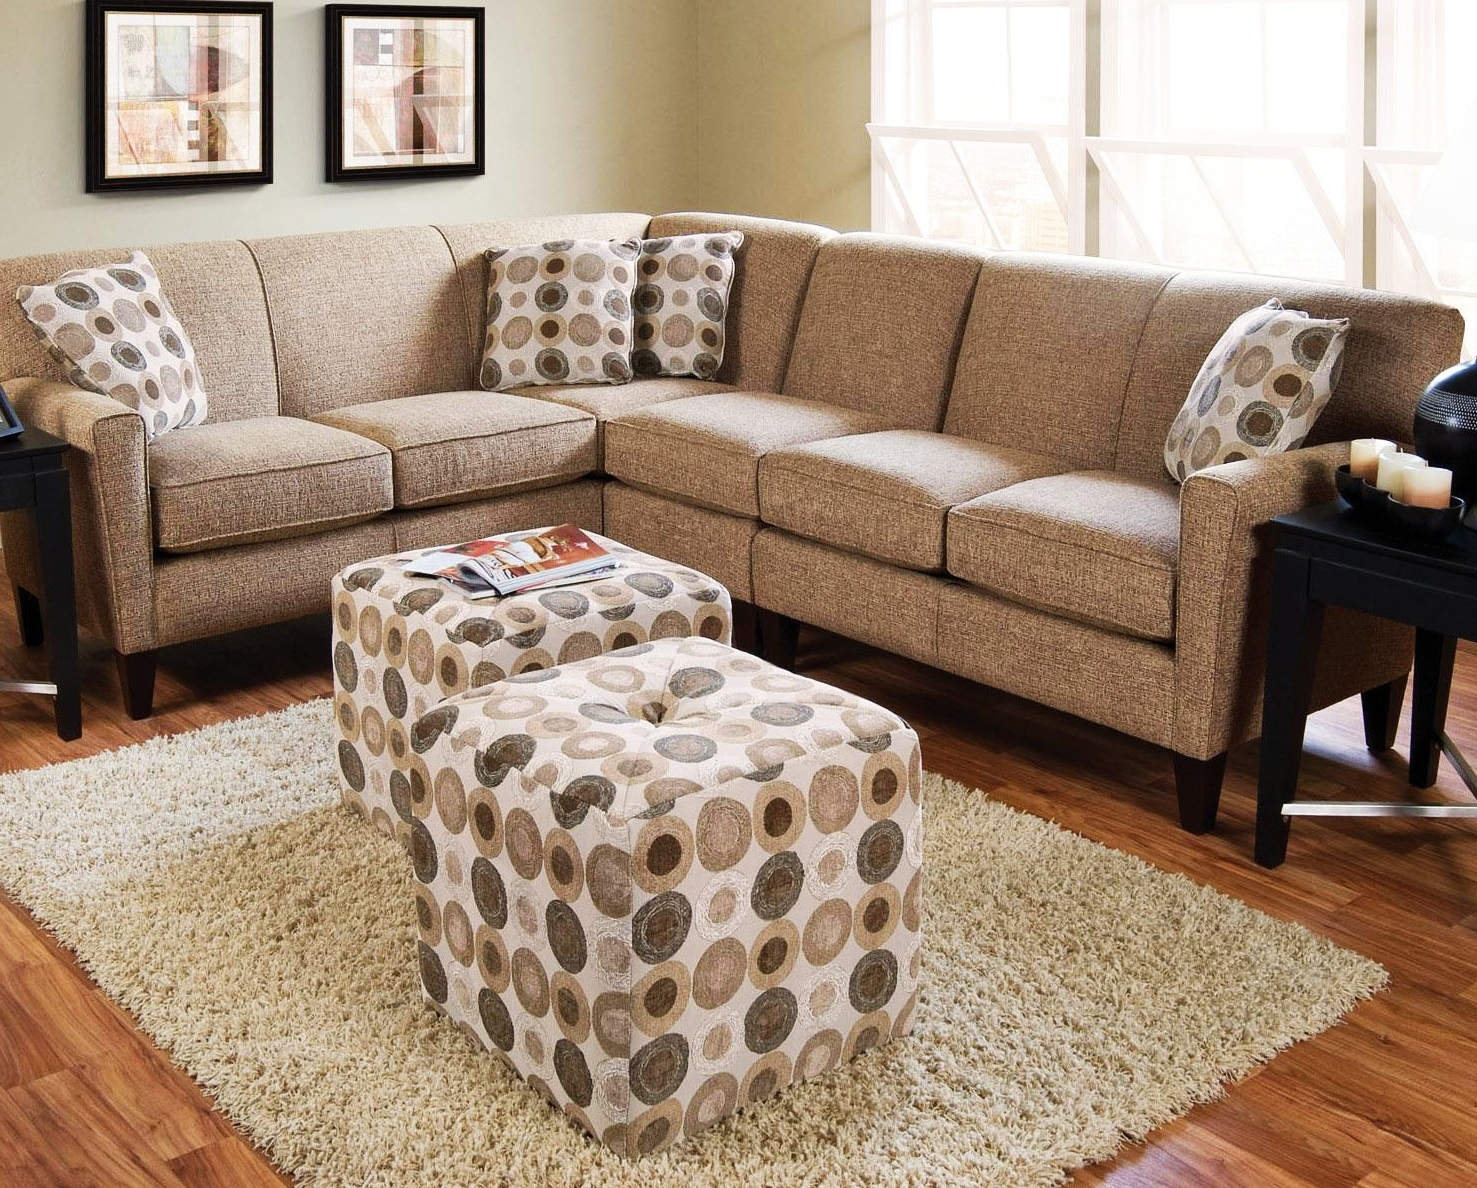 Fashionable Cheap Sectional Sofas Small Space Bedroom Furniture Small Regarding Small Sectional Sofas For Small Spaces (View 5 of 15)